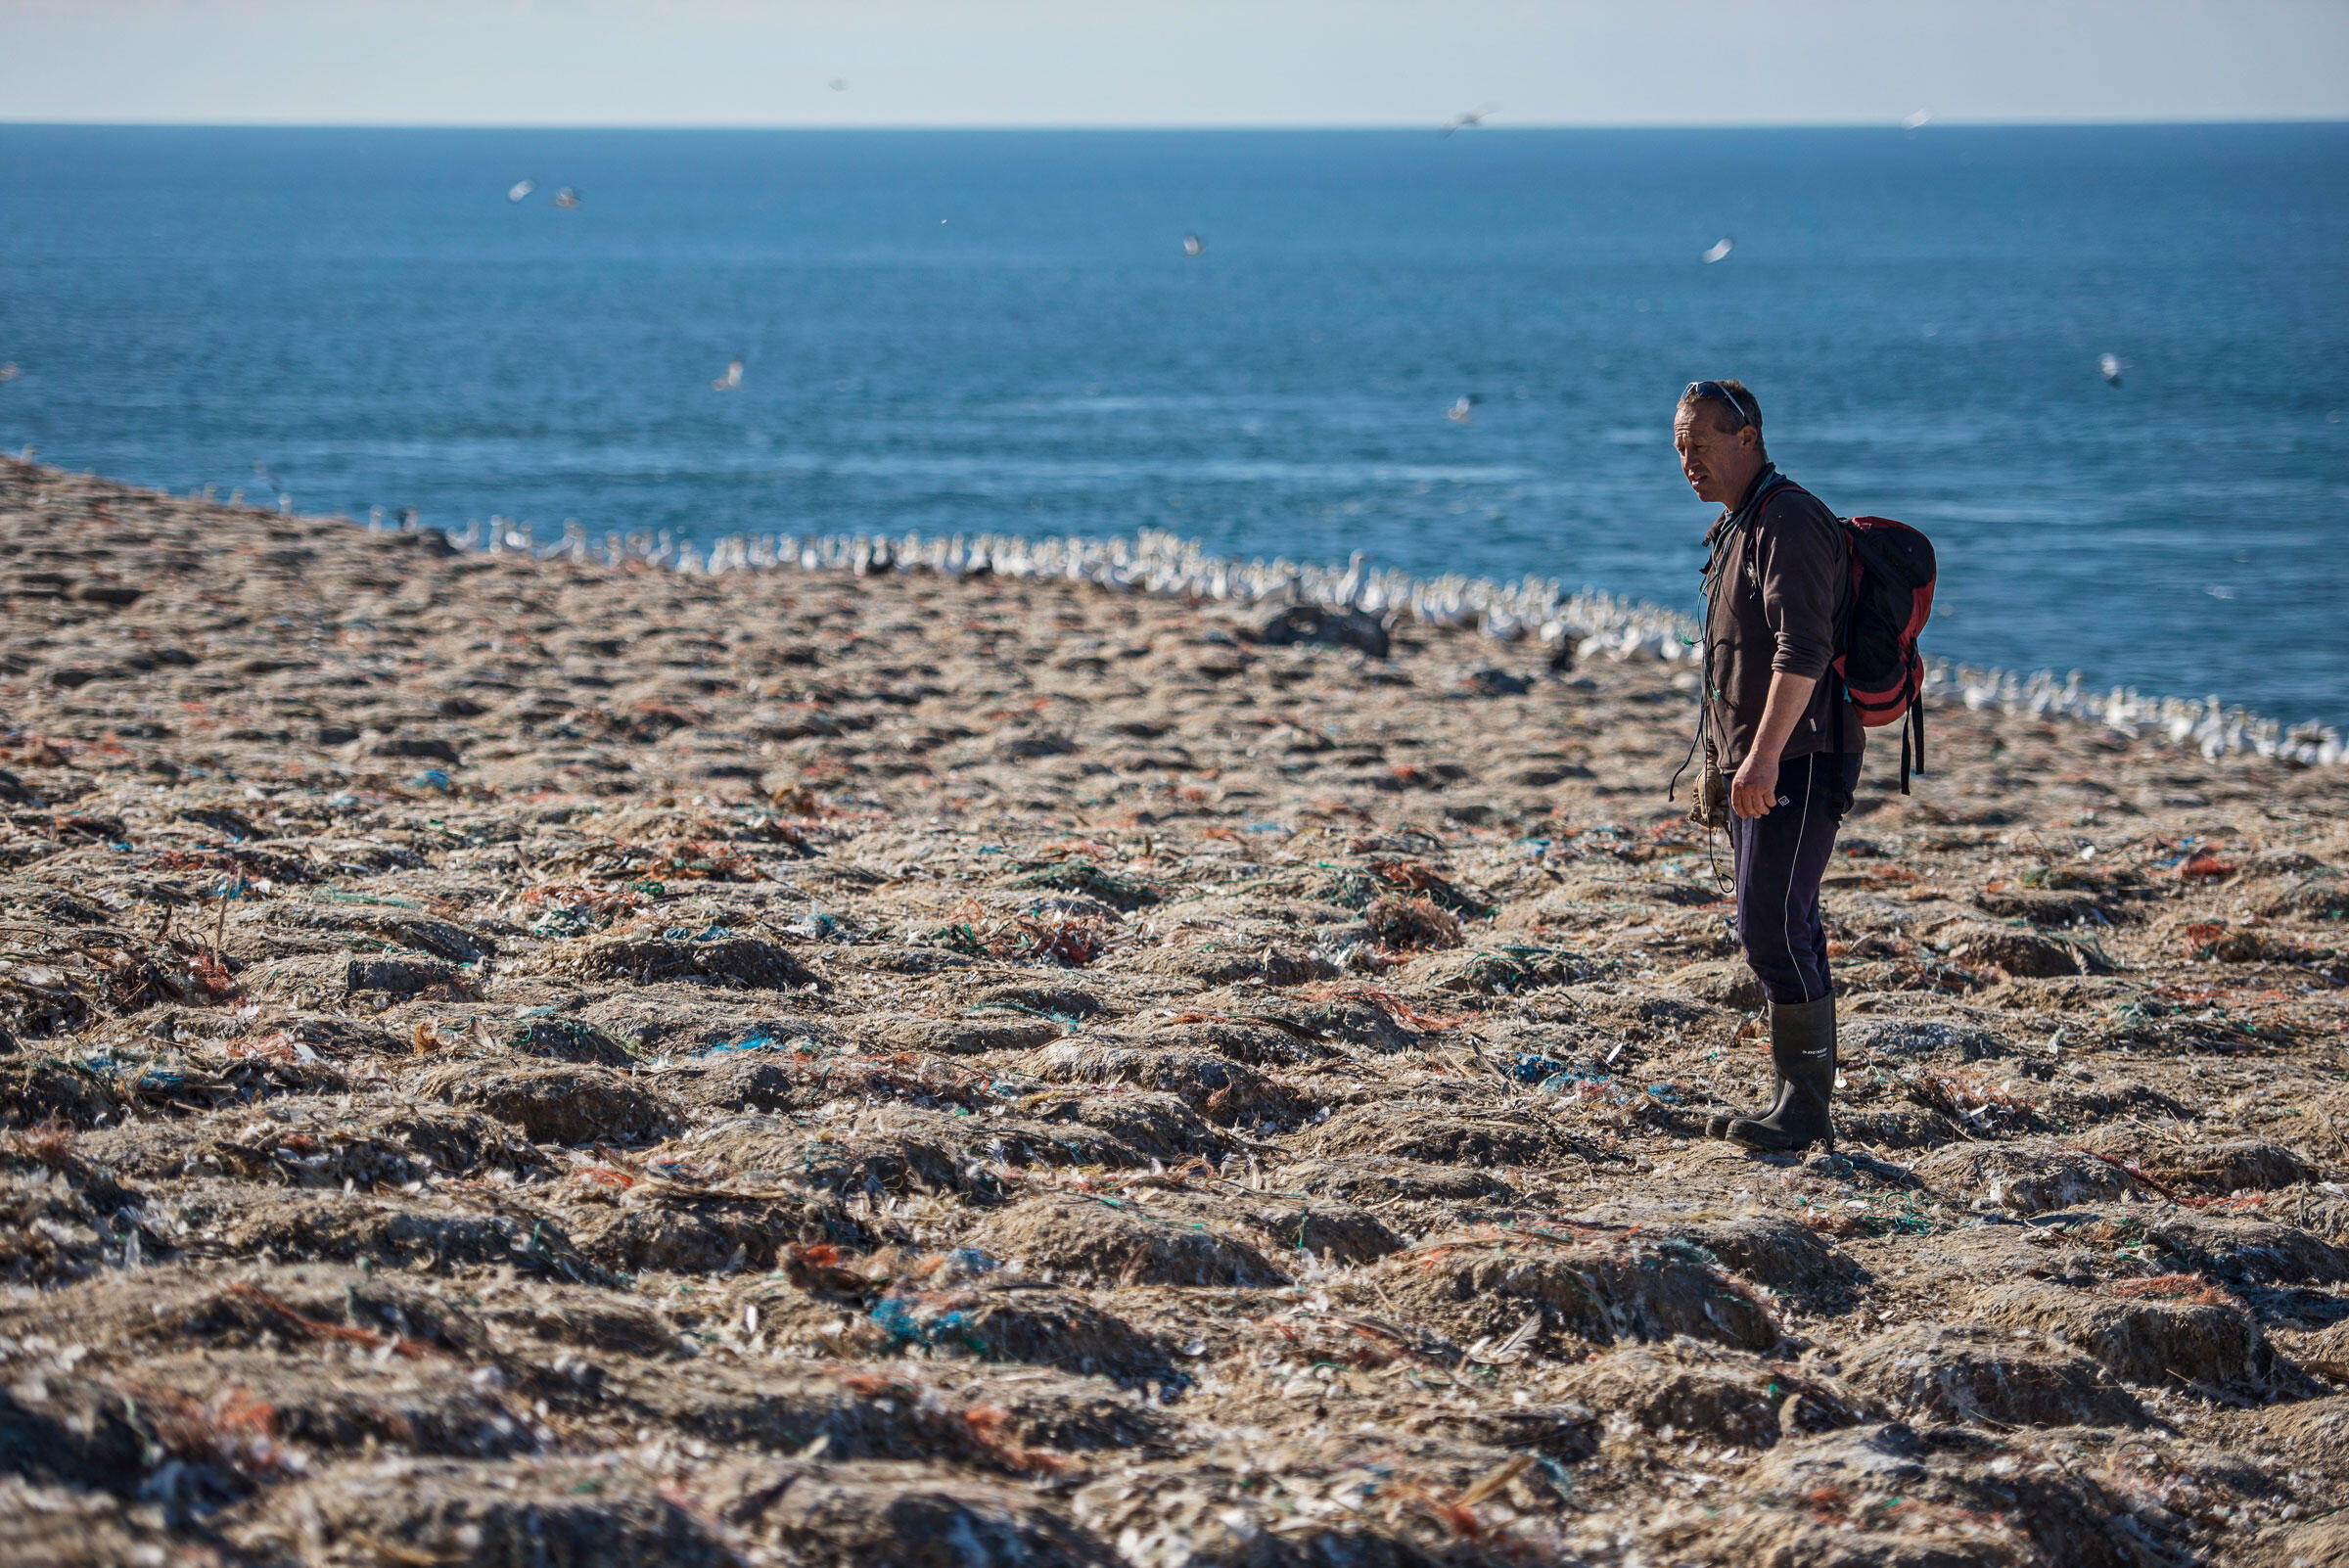 Tim Brooke, a skipper with wildlife tourism company Venture Jet, has seen the plastic problem on Grassholm worsen since his first visit 25 years ago. Sam Hobson